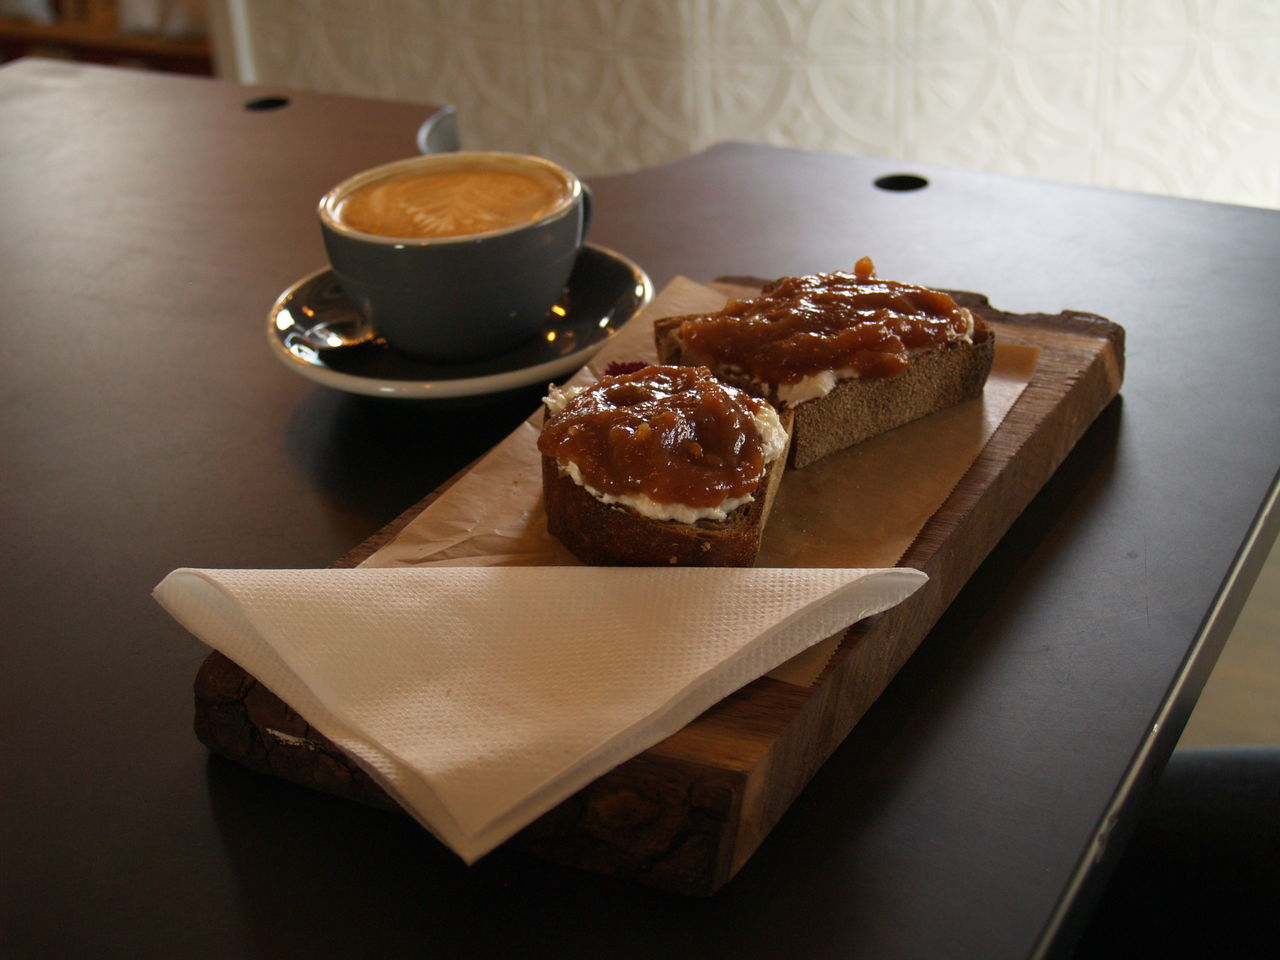 Bread Served On Cutting Board By Coffee Cup On Table